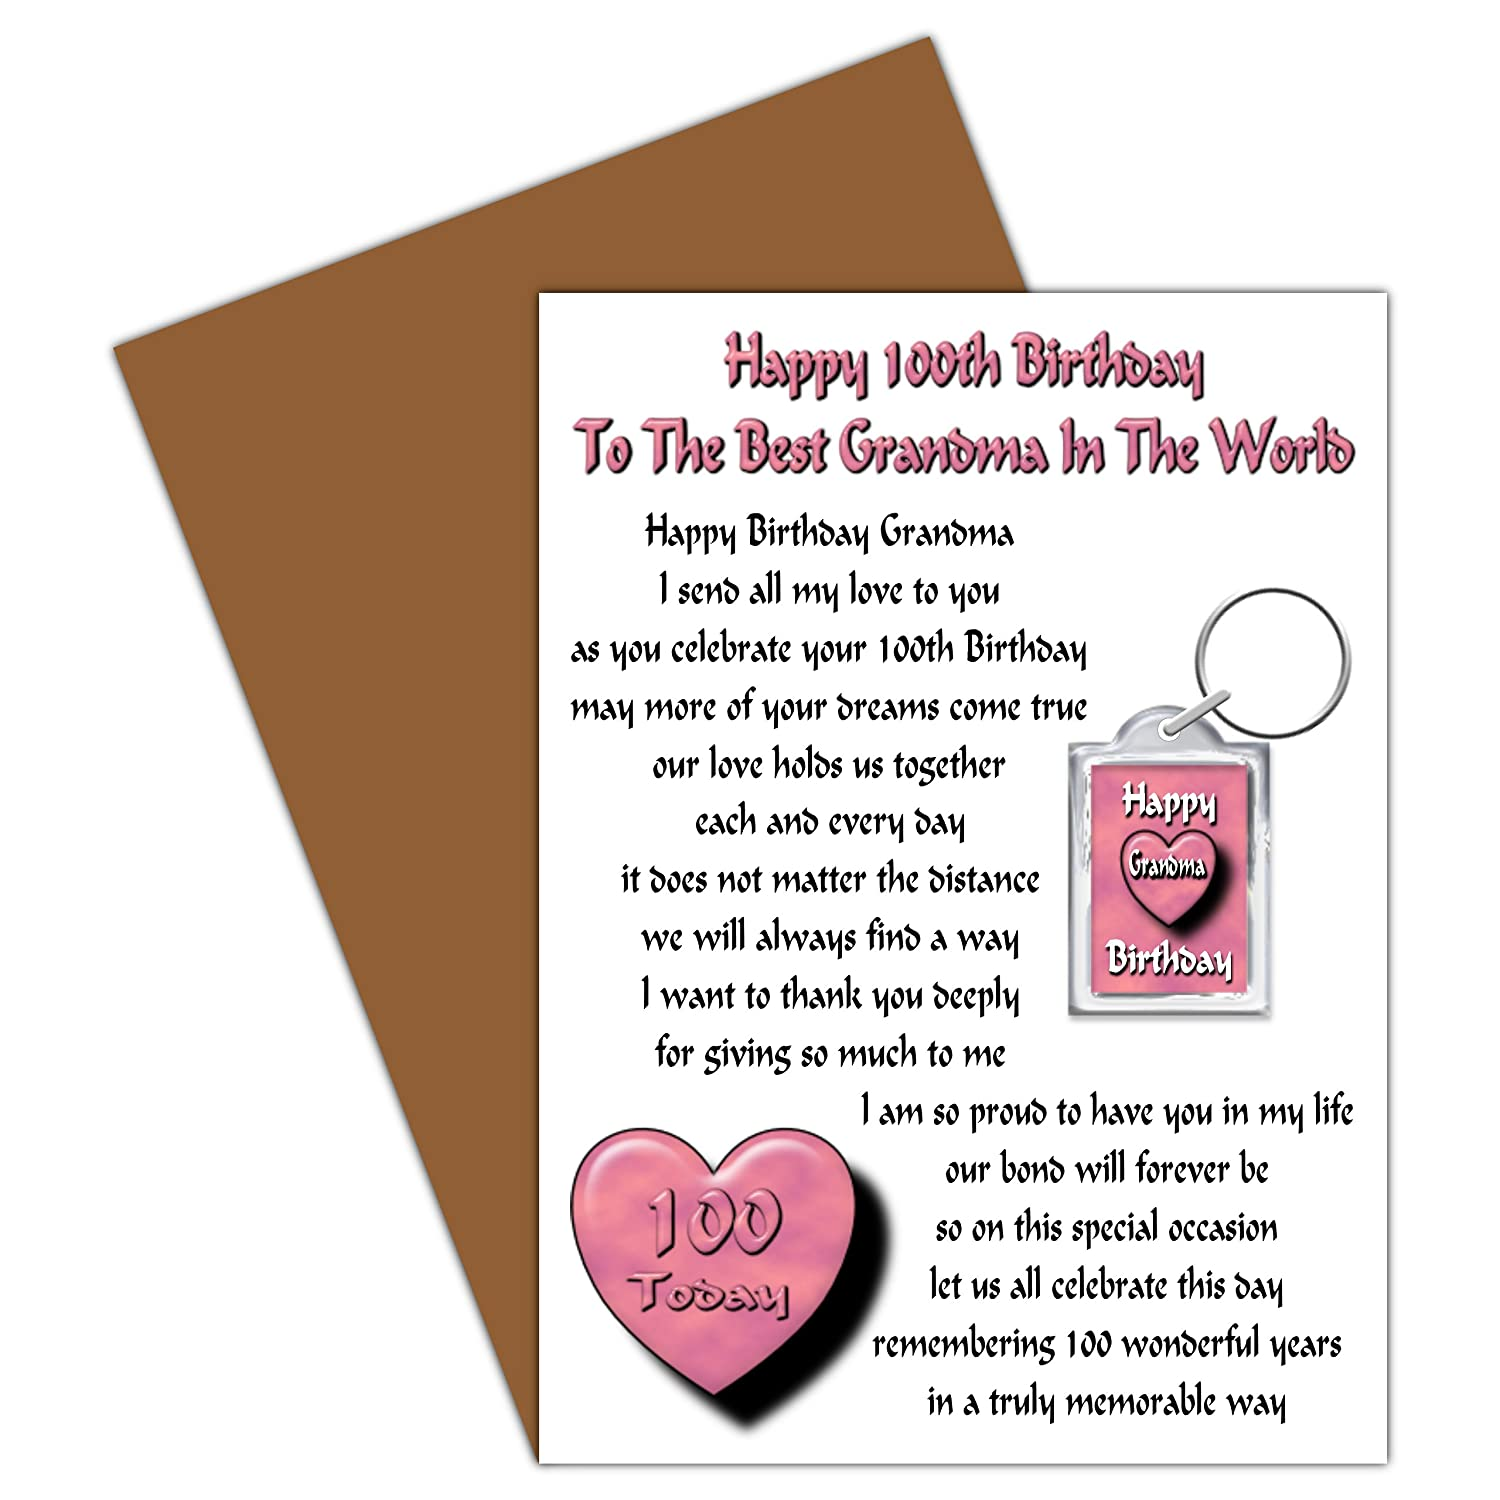 Happy Birthday Verses For Cards childrens party invitations – Verses for 50th Birthday Cards